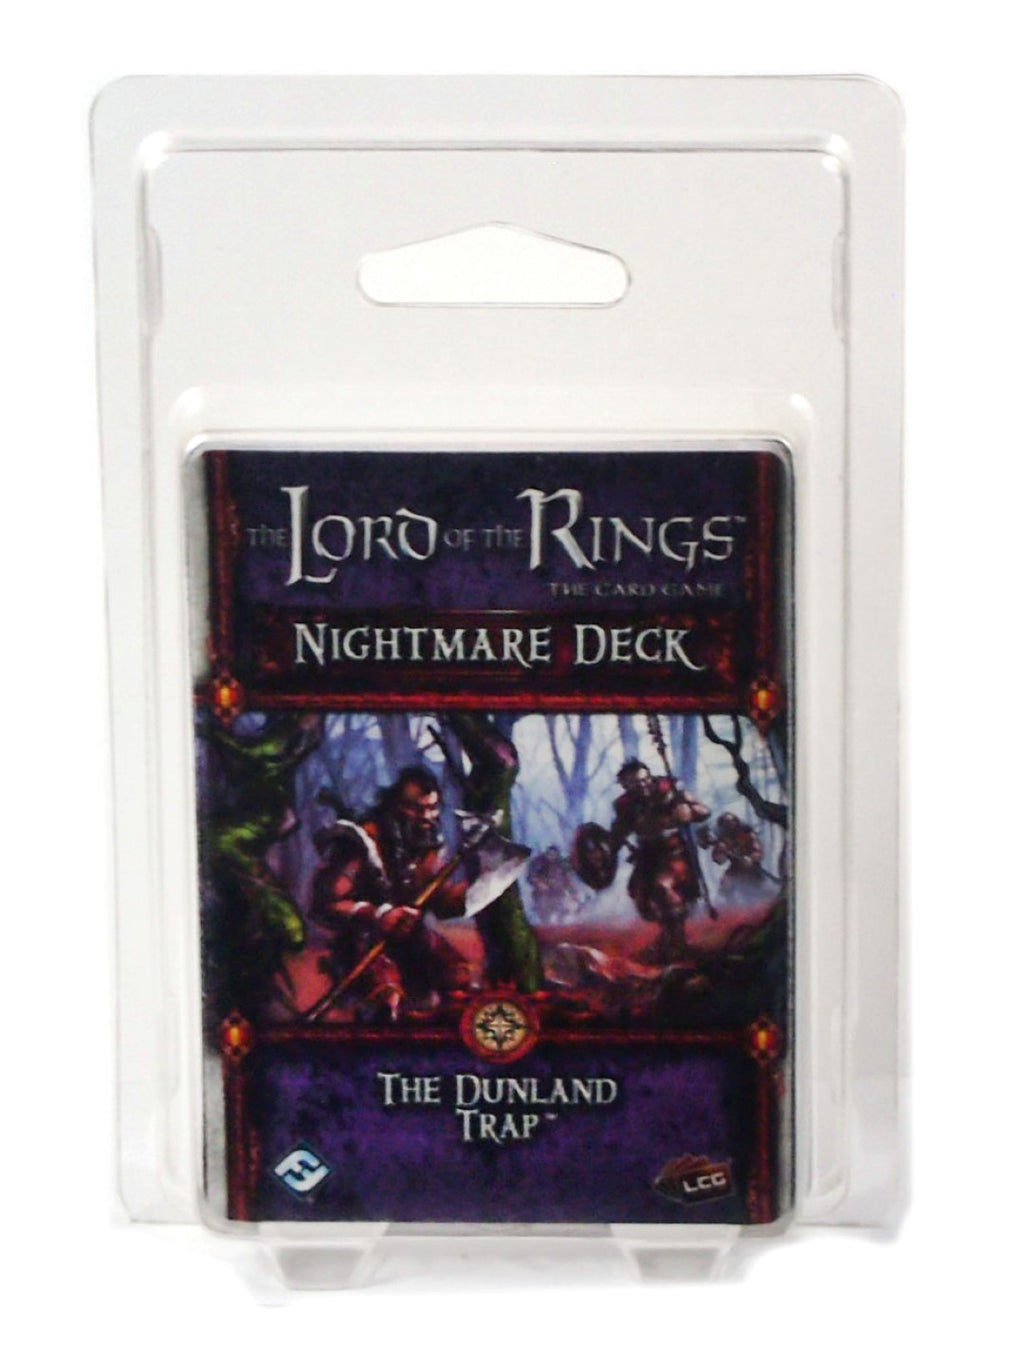 Lord of the Rings LCG, The Dunland Trap Nightmare Deck